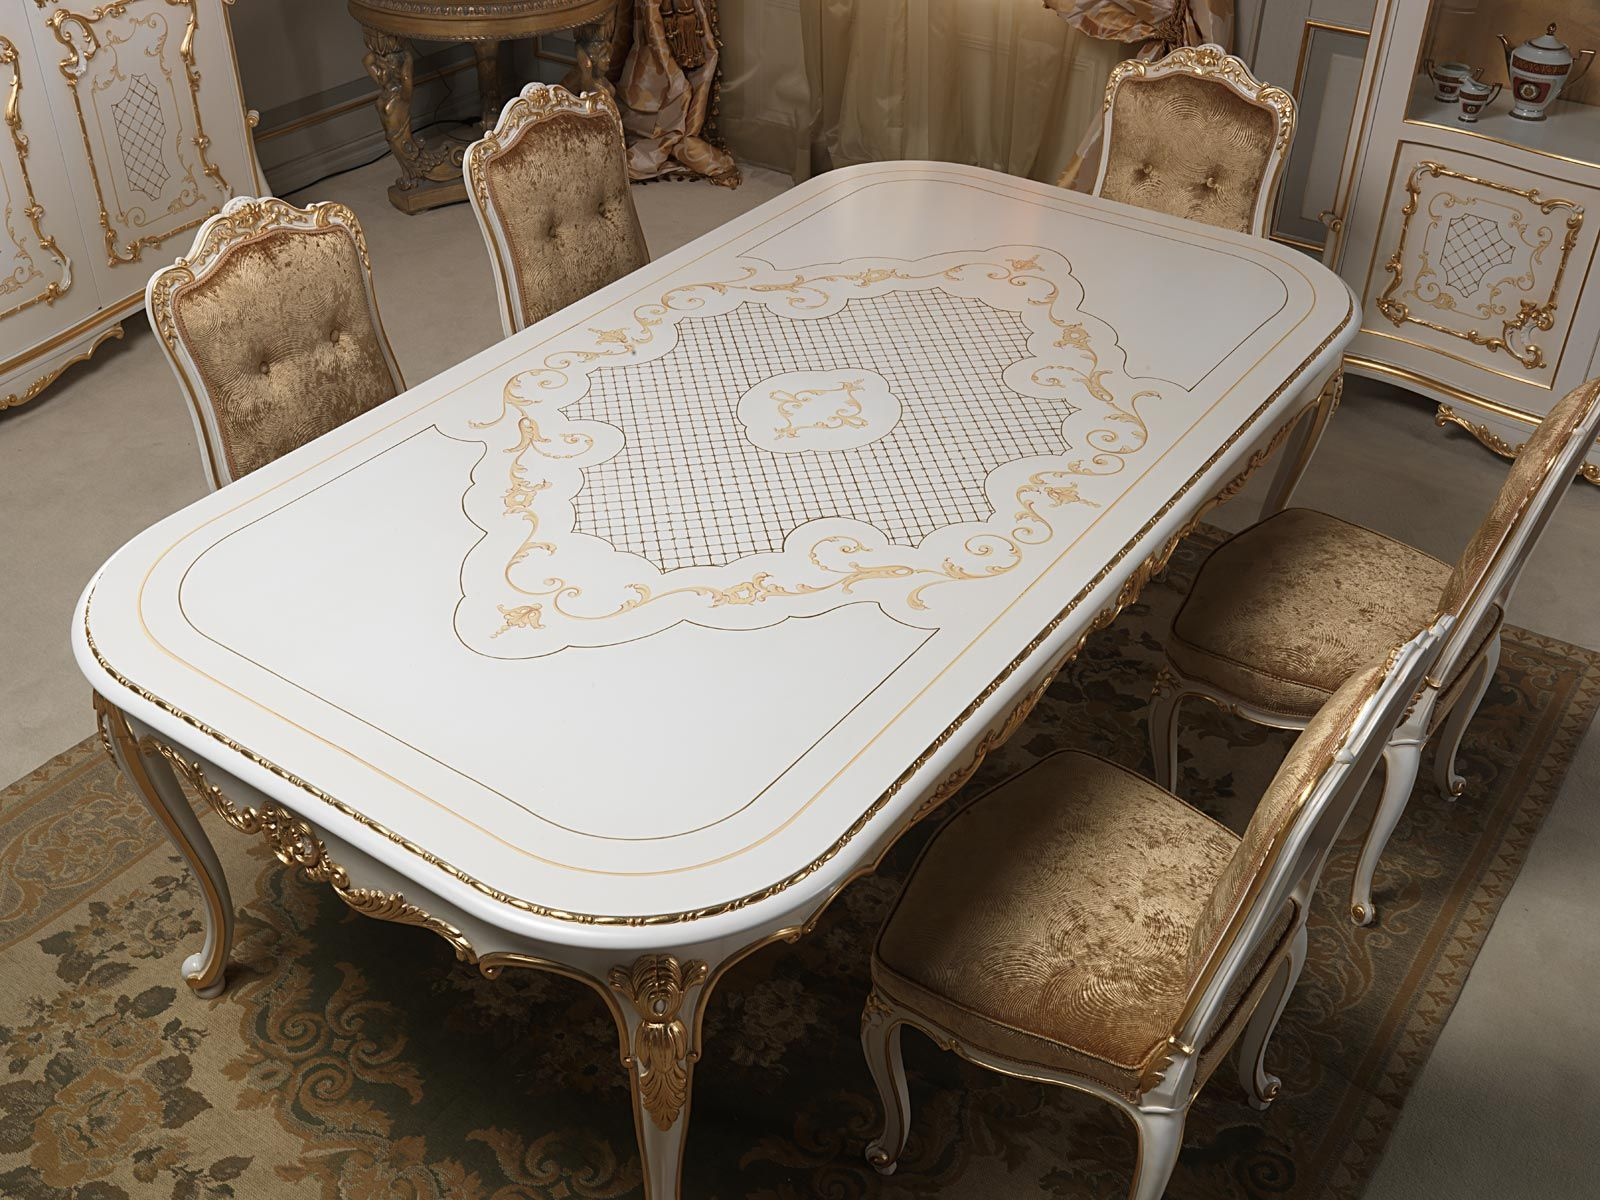 Lovely Dining Table In Louis XV Style With Rich Carvings Executed By Hand, Carved  And Upholstered